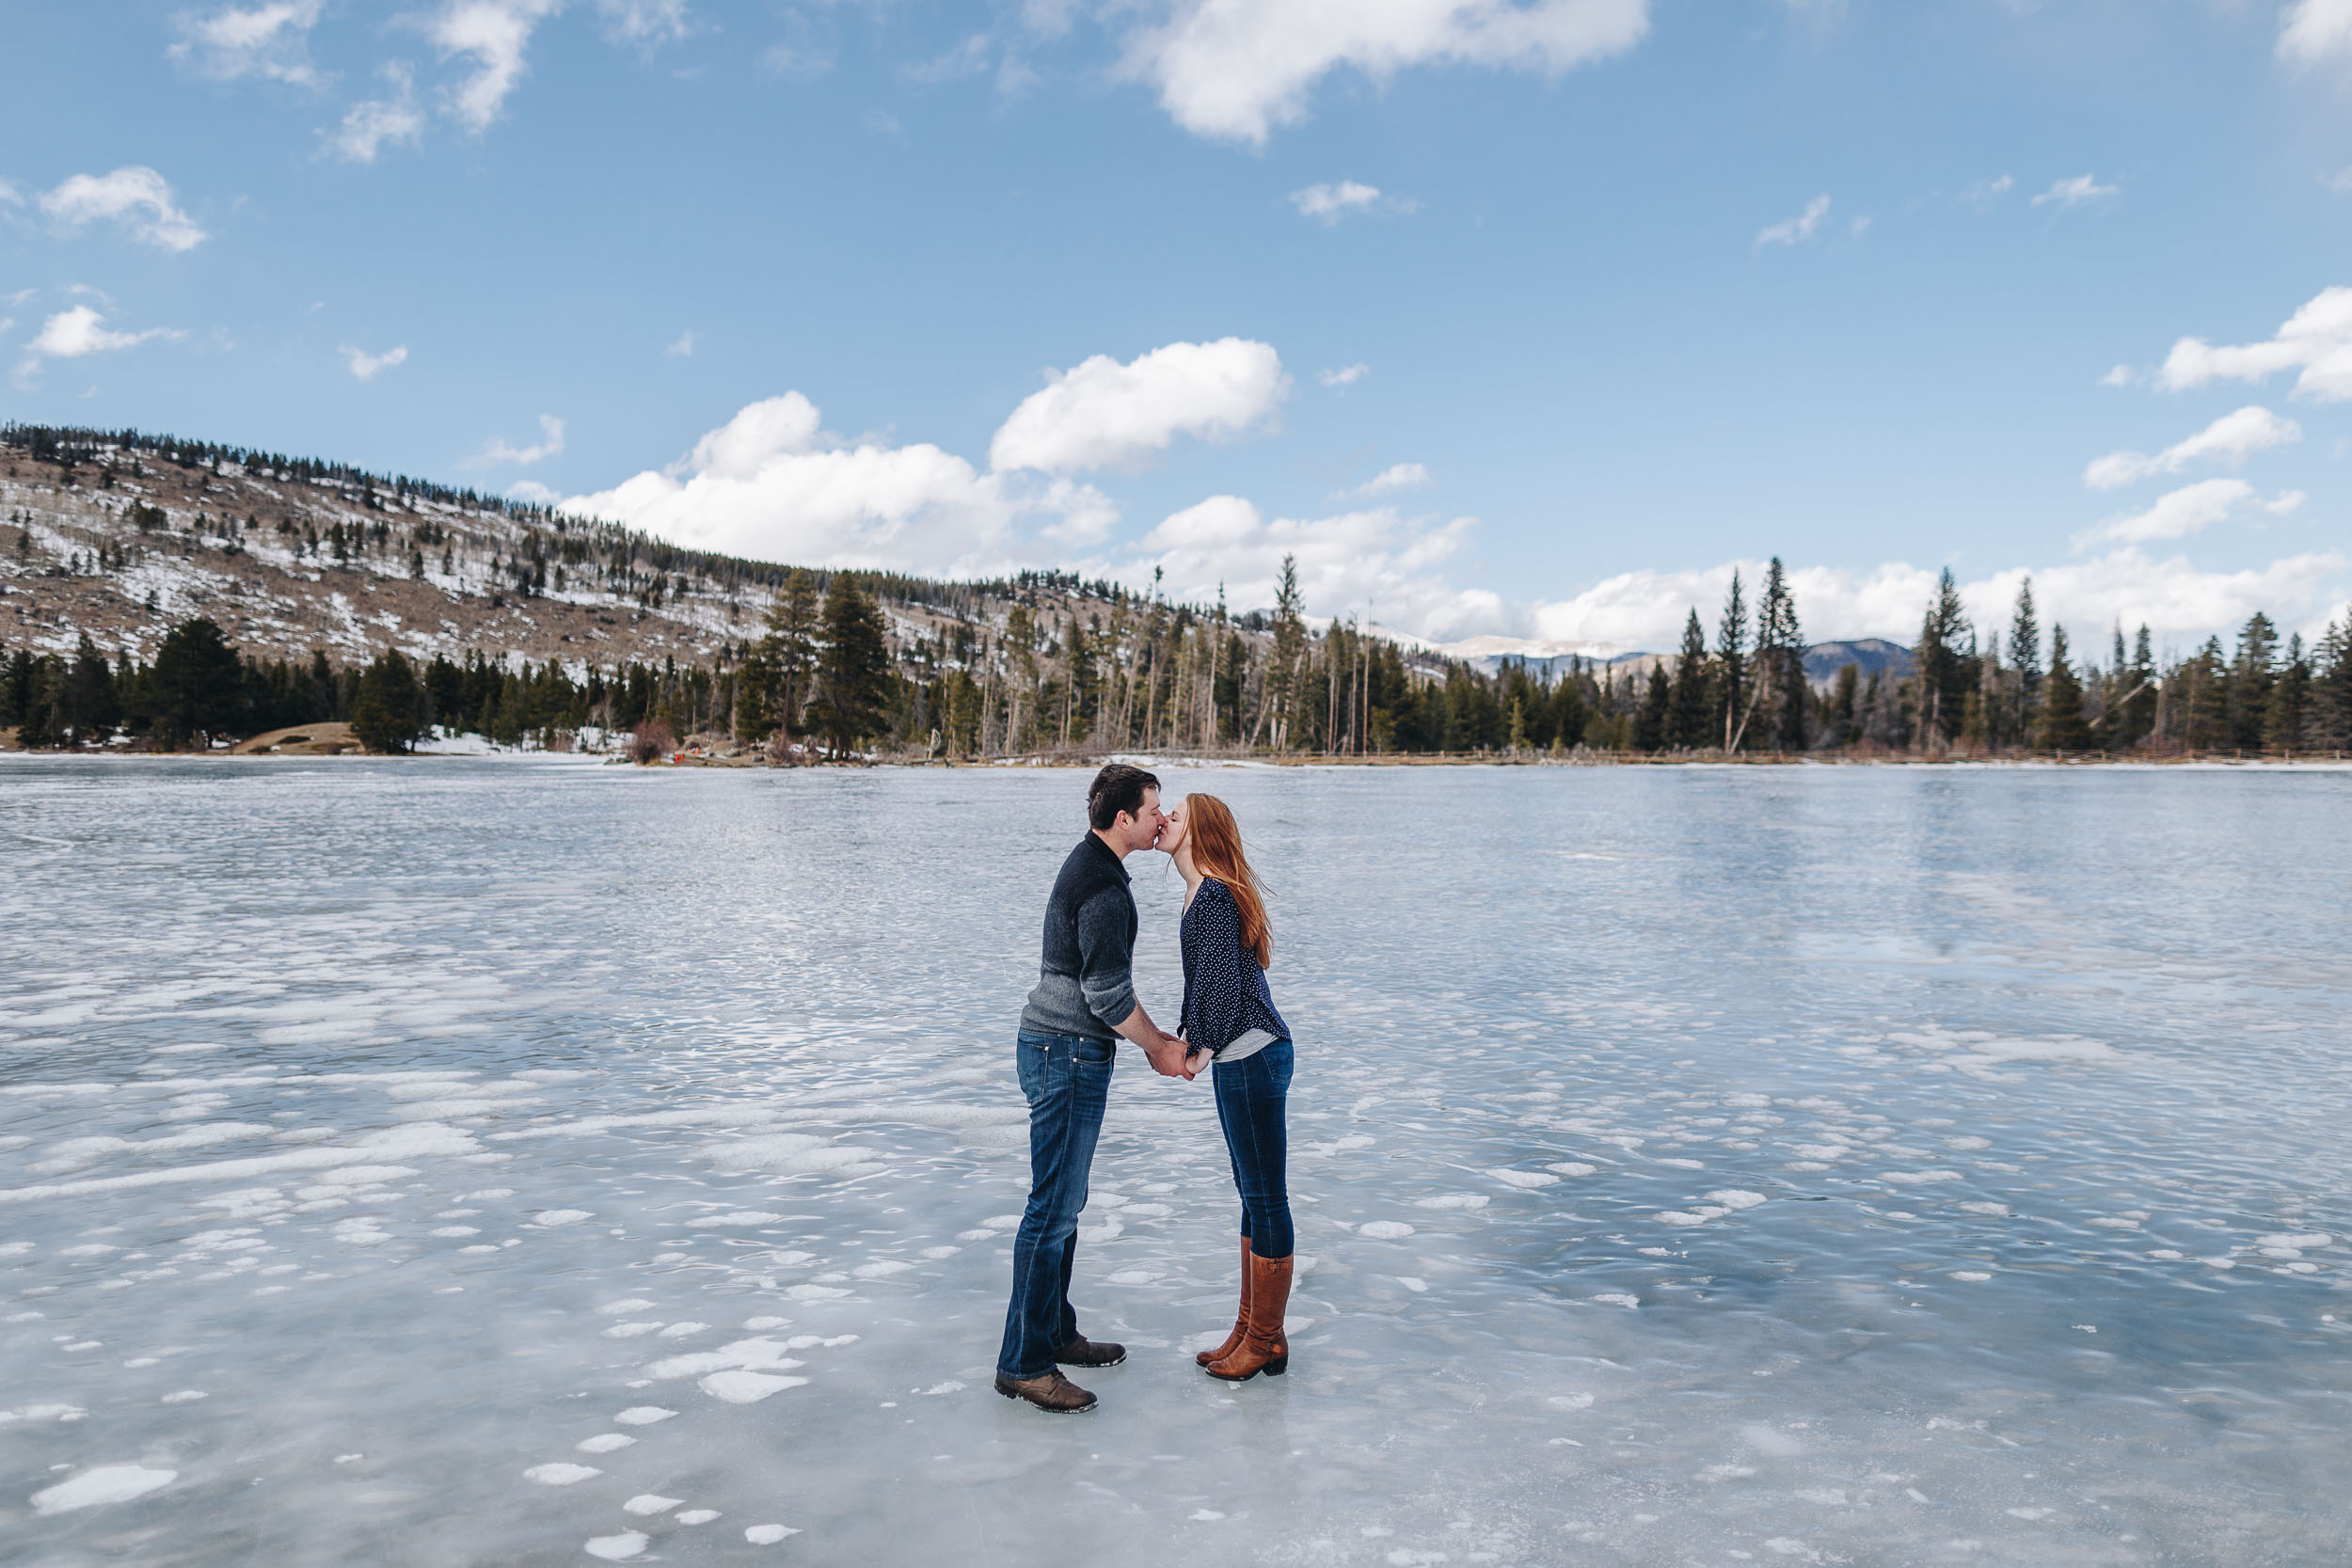 Winter-engagement-photo-session-in-Rocky-Mountain-National-Park-59.jpg